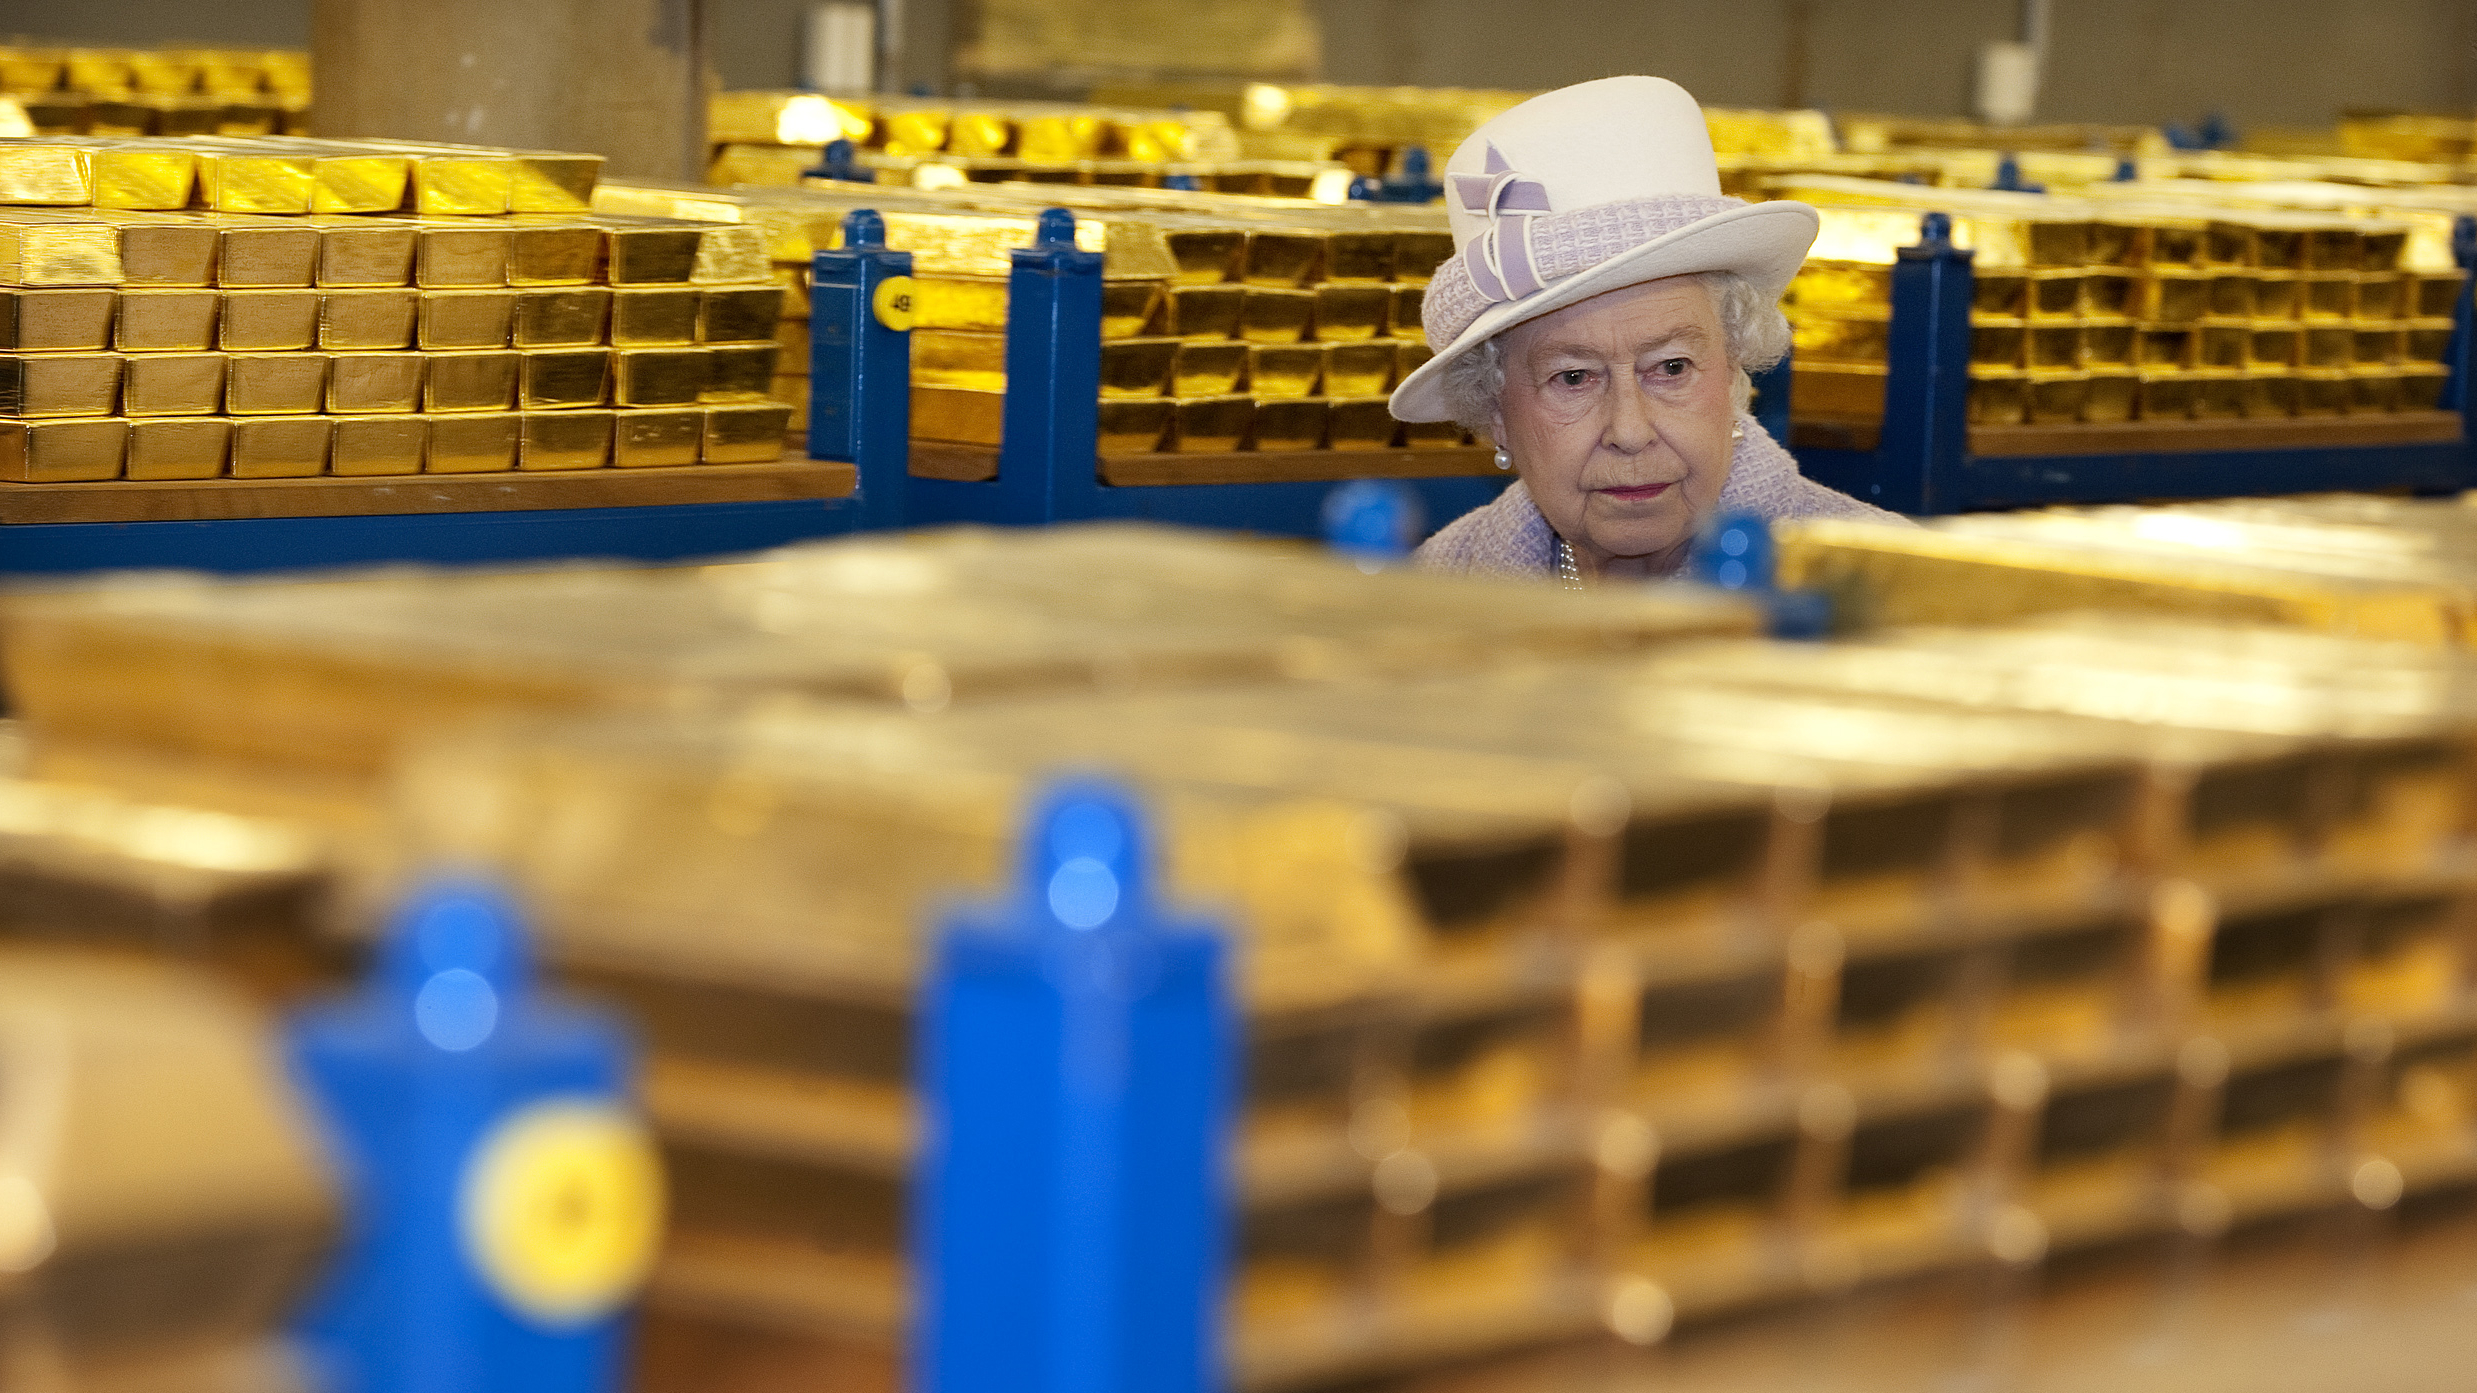 Queen inspects Bank of England's gold bars